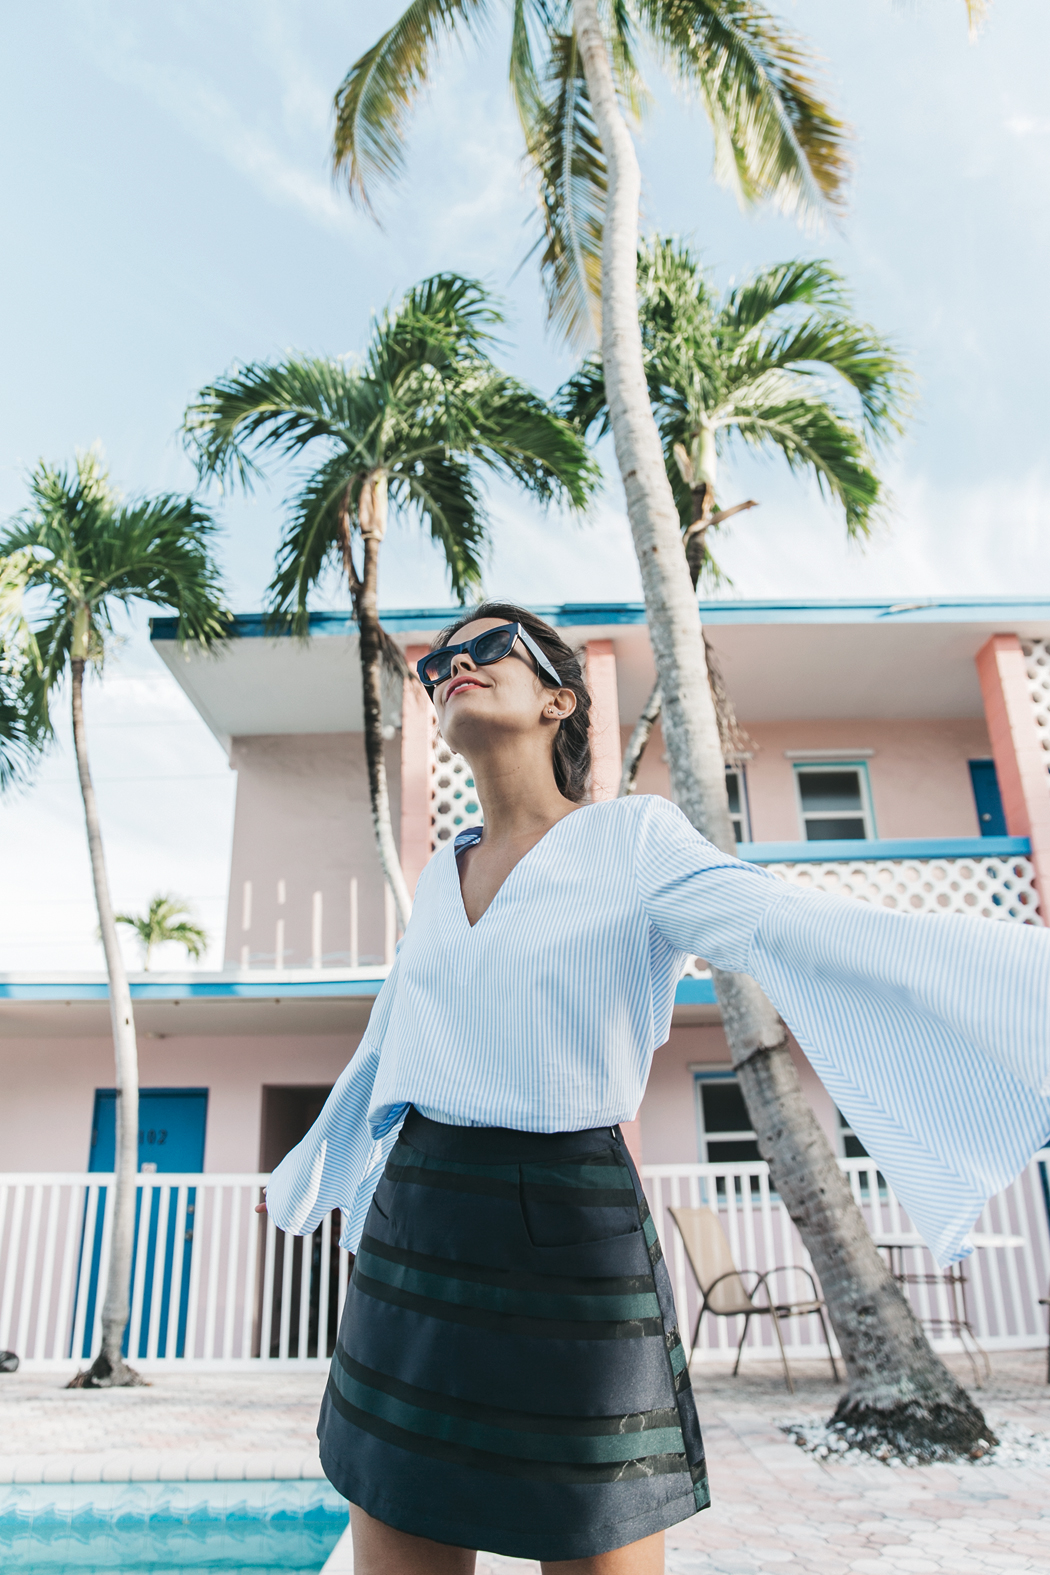 Miami-Striped_Top-Striped_Skirt-Chanel_SlingBack_Shoes-Outfit-Celine_Sunglasses-Isla_Morada-Street_Style-55